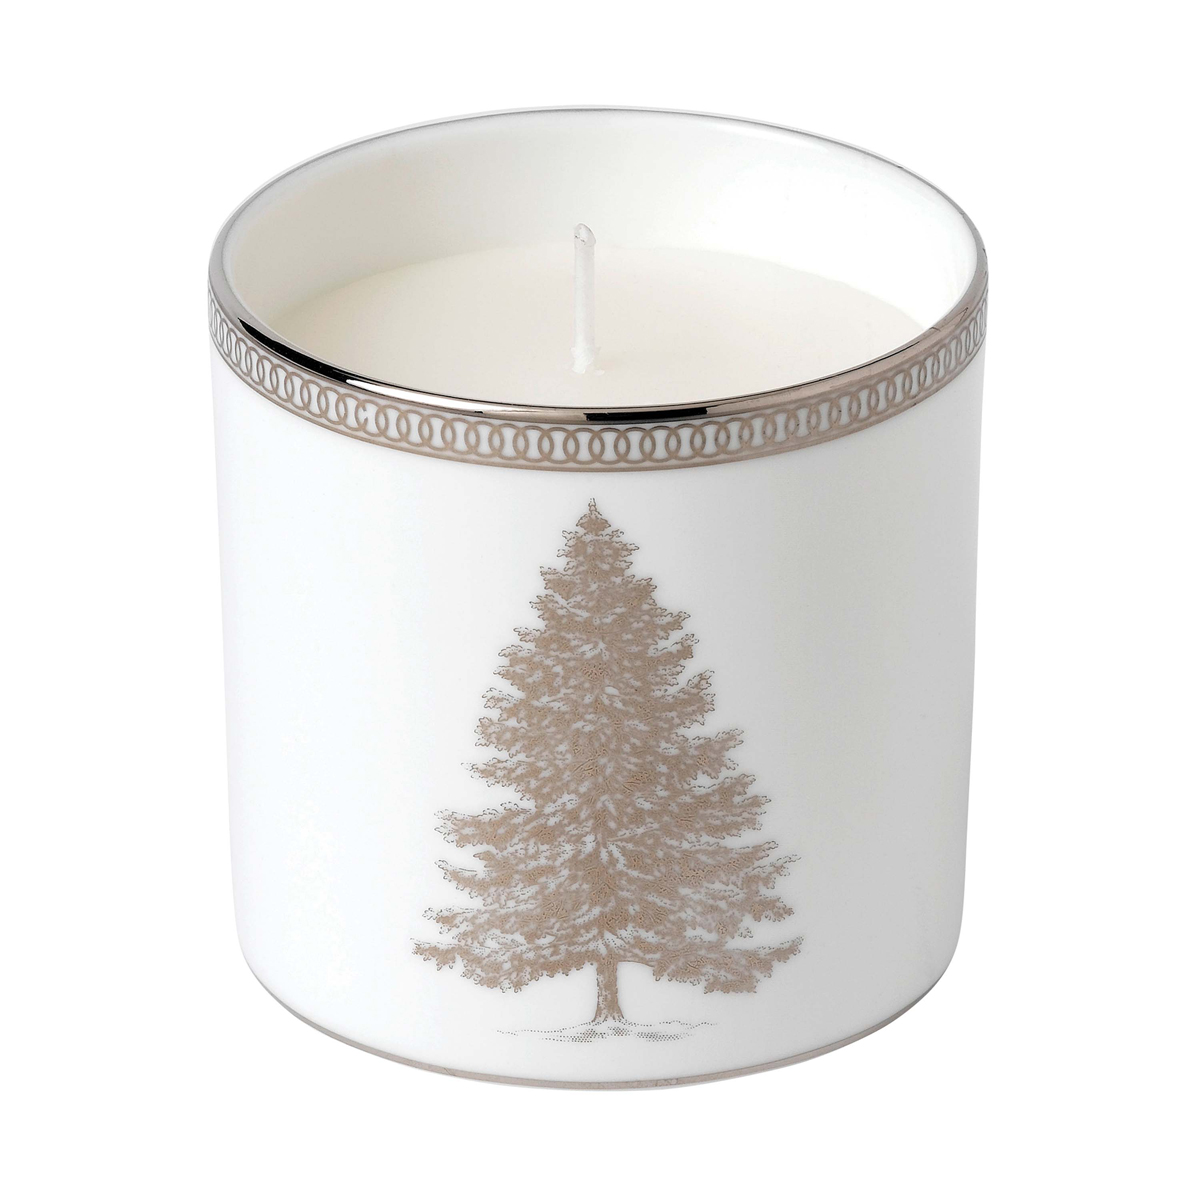 Wedgwood 2020 Winter White Candle, Festive Spice, Juniper and White Heather